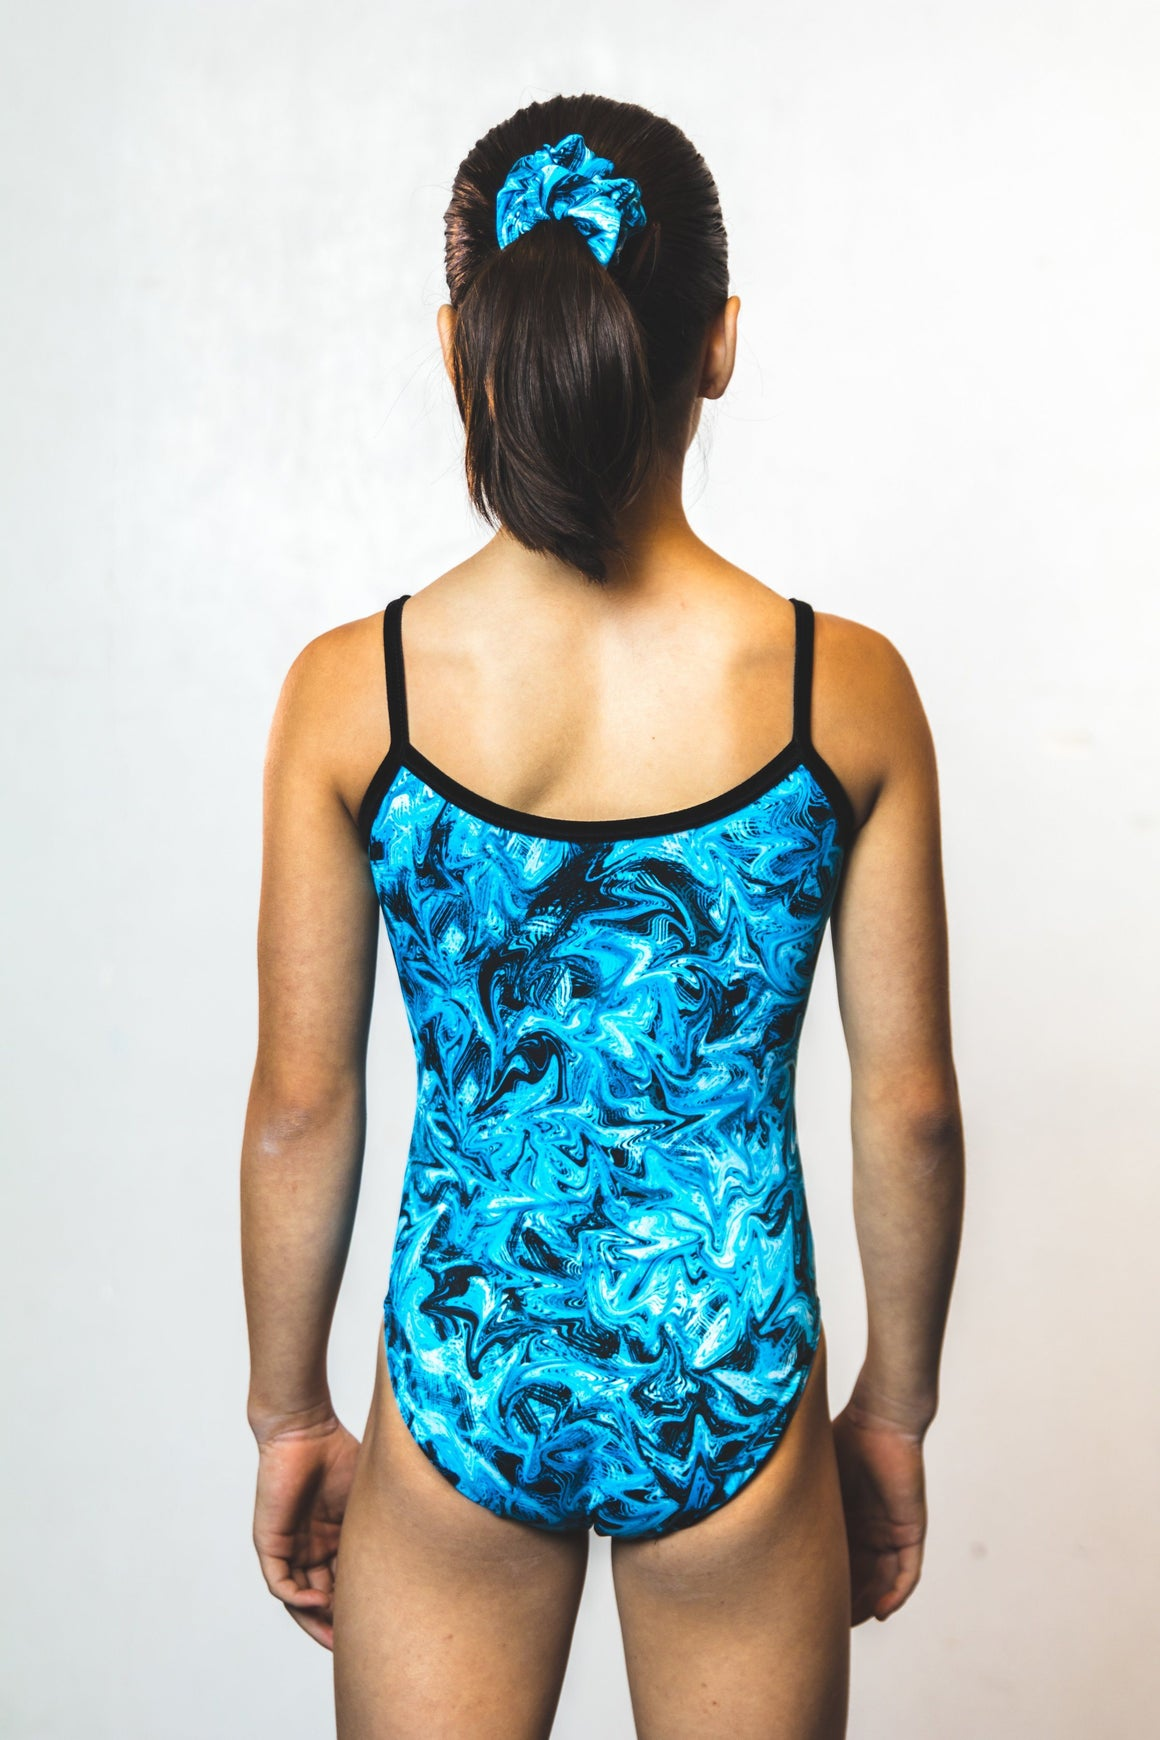 Turbulent blue, gymnastics, Rebecca's Mom Leotards, Leotard.com - image